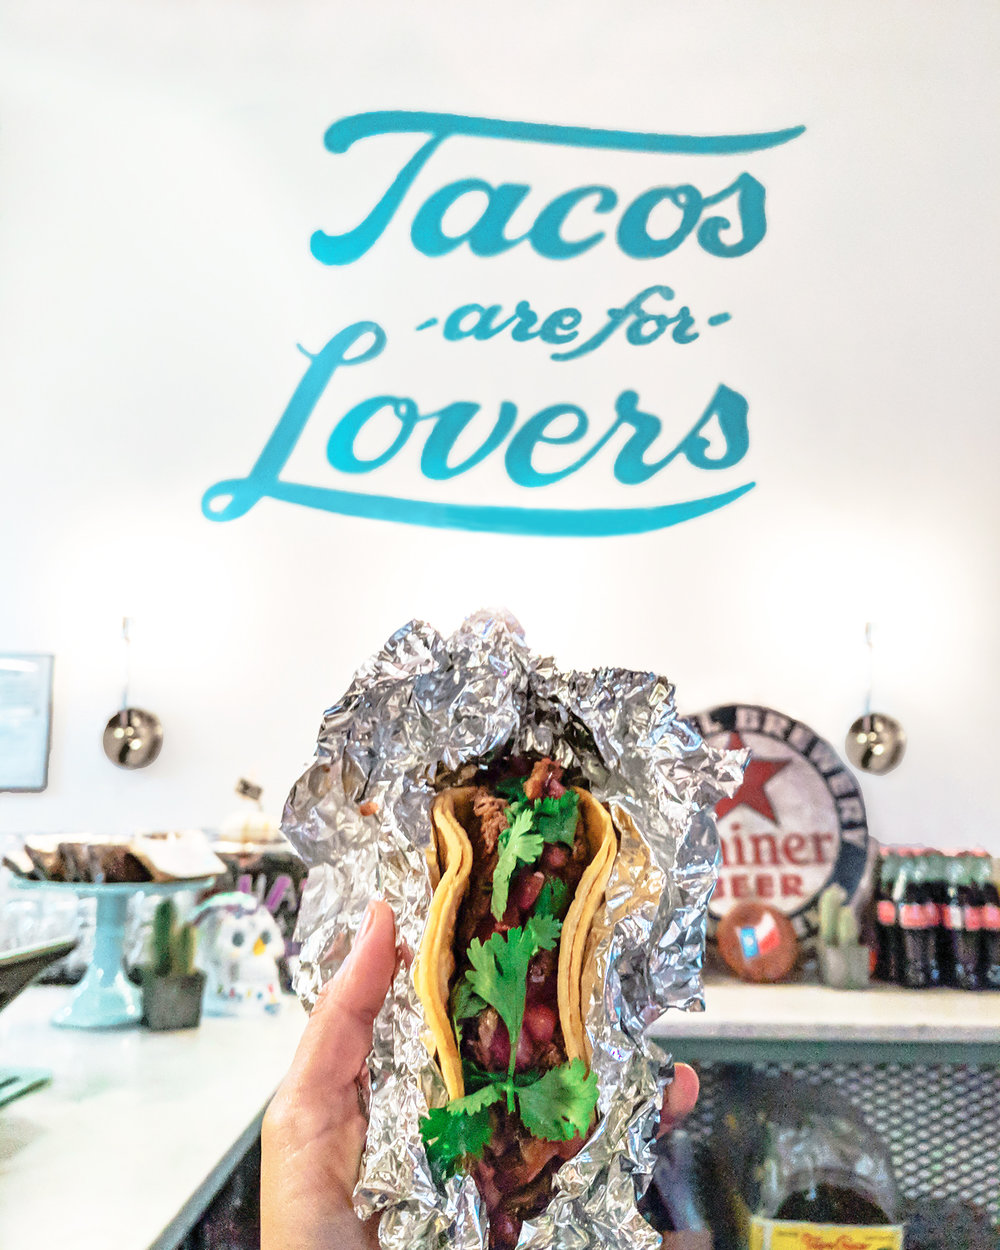 Tacos are for lovers. And to make your love grow even more this location of  Stella Taco offers a daily happy hour  (Monday-Friday) from 3 - 6pm